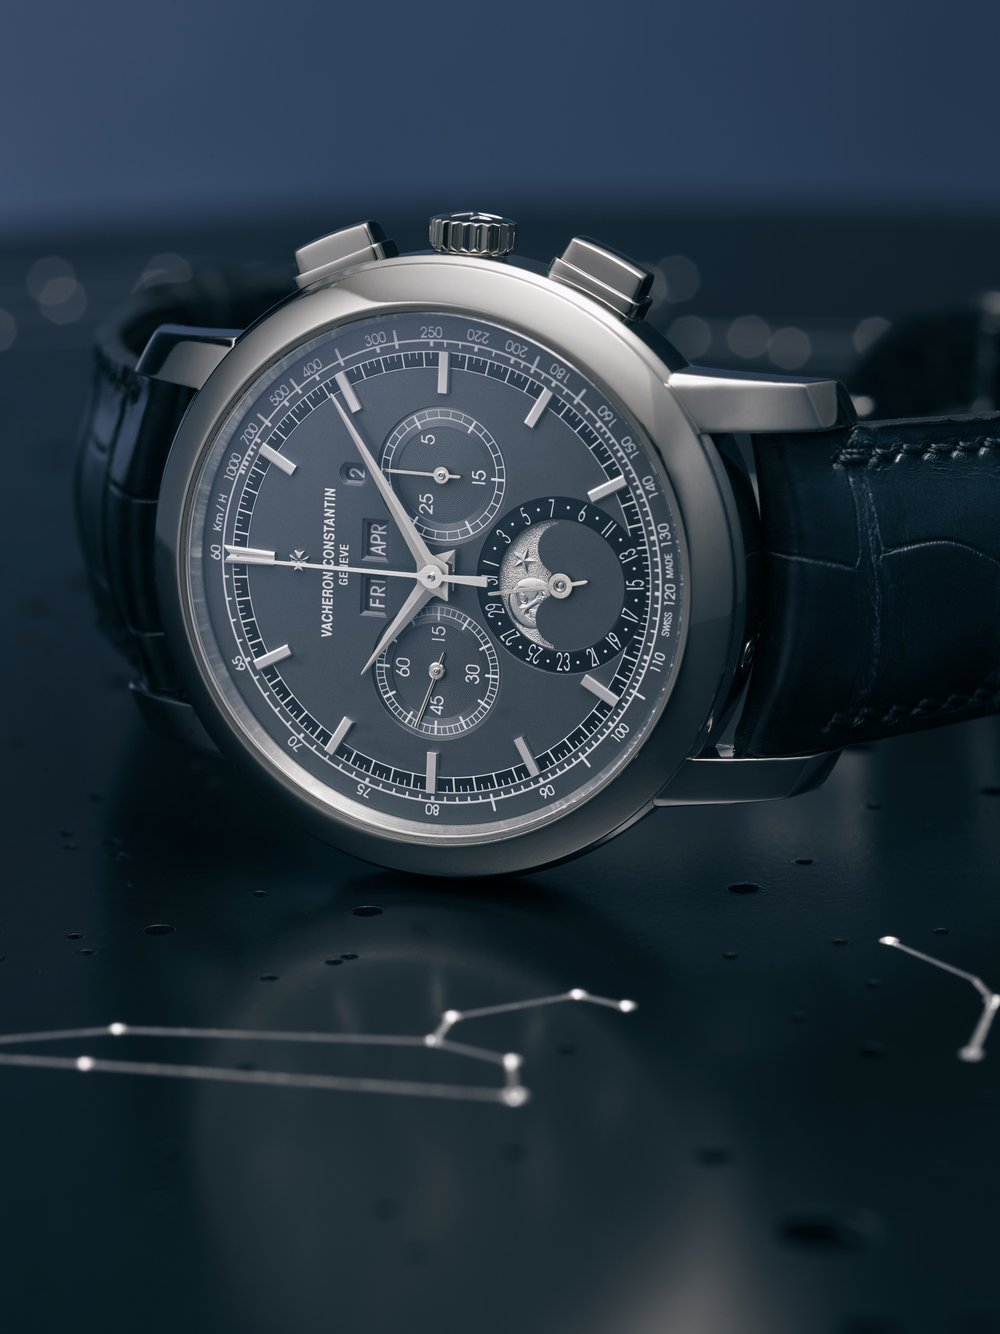 Vacheron Constantin watch